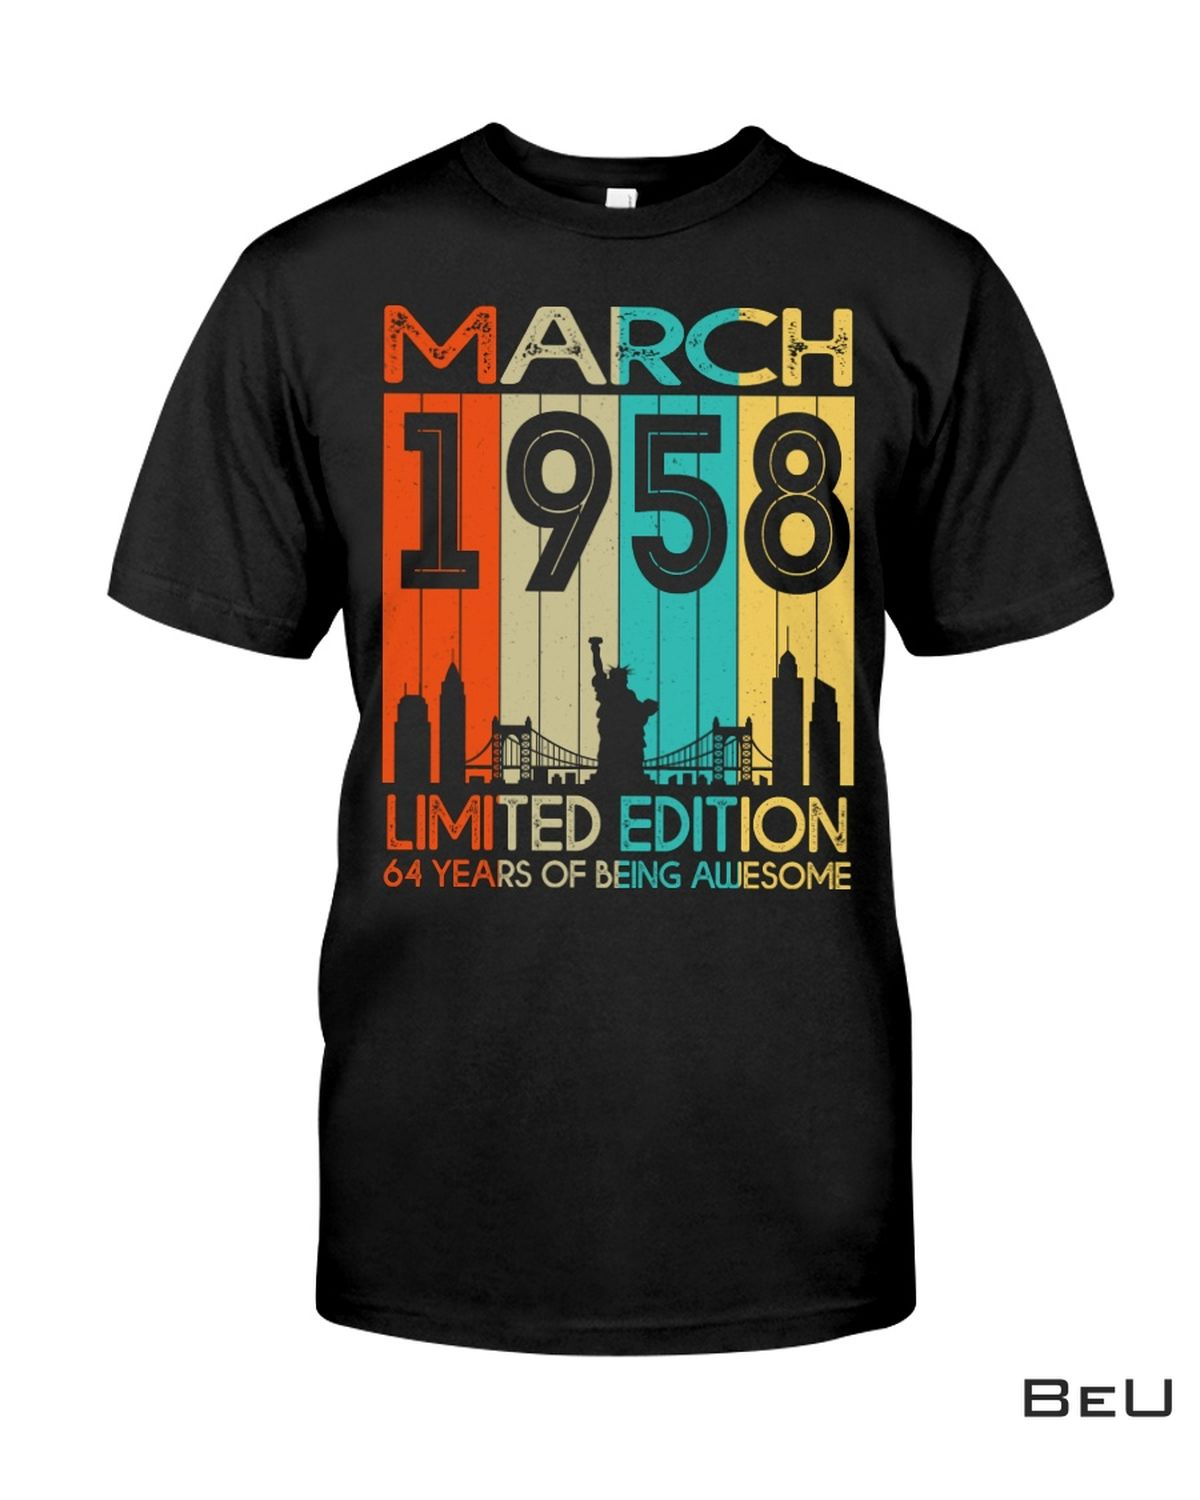 March 1958 Limited Edition Shirt, hoodie, tank top